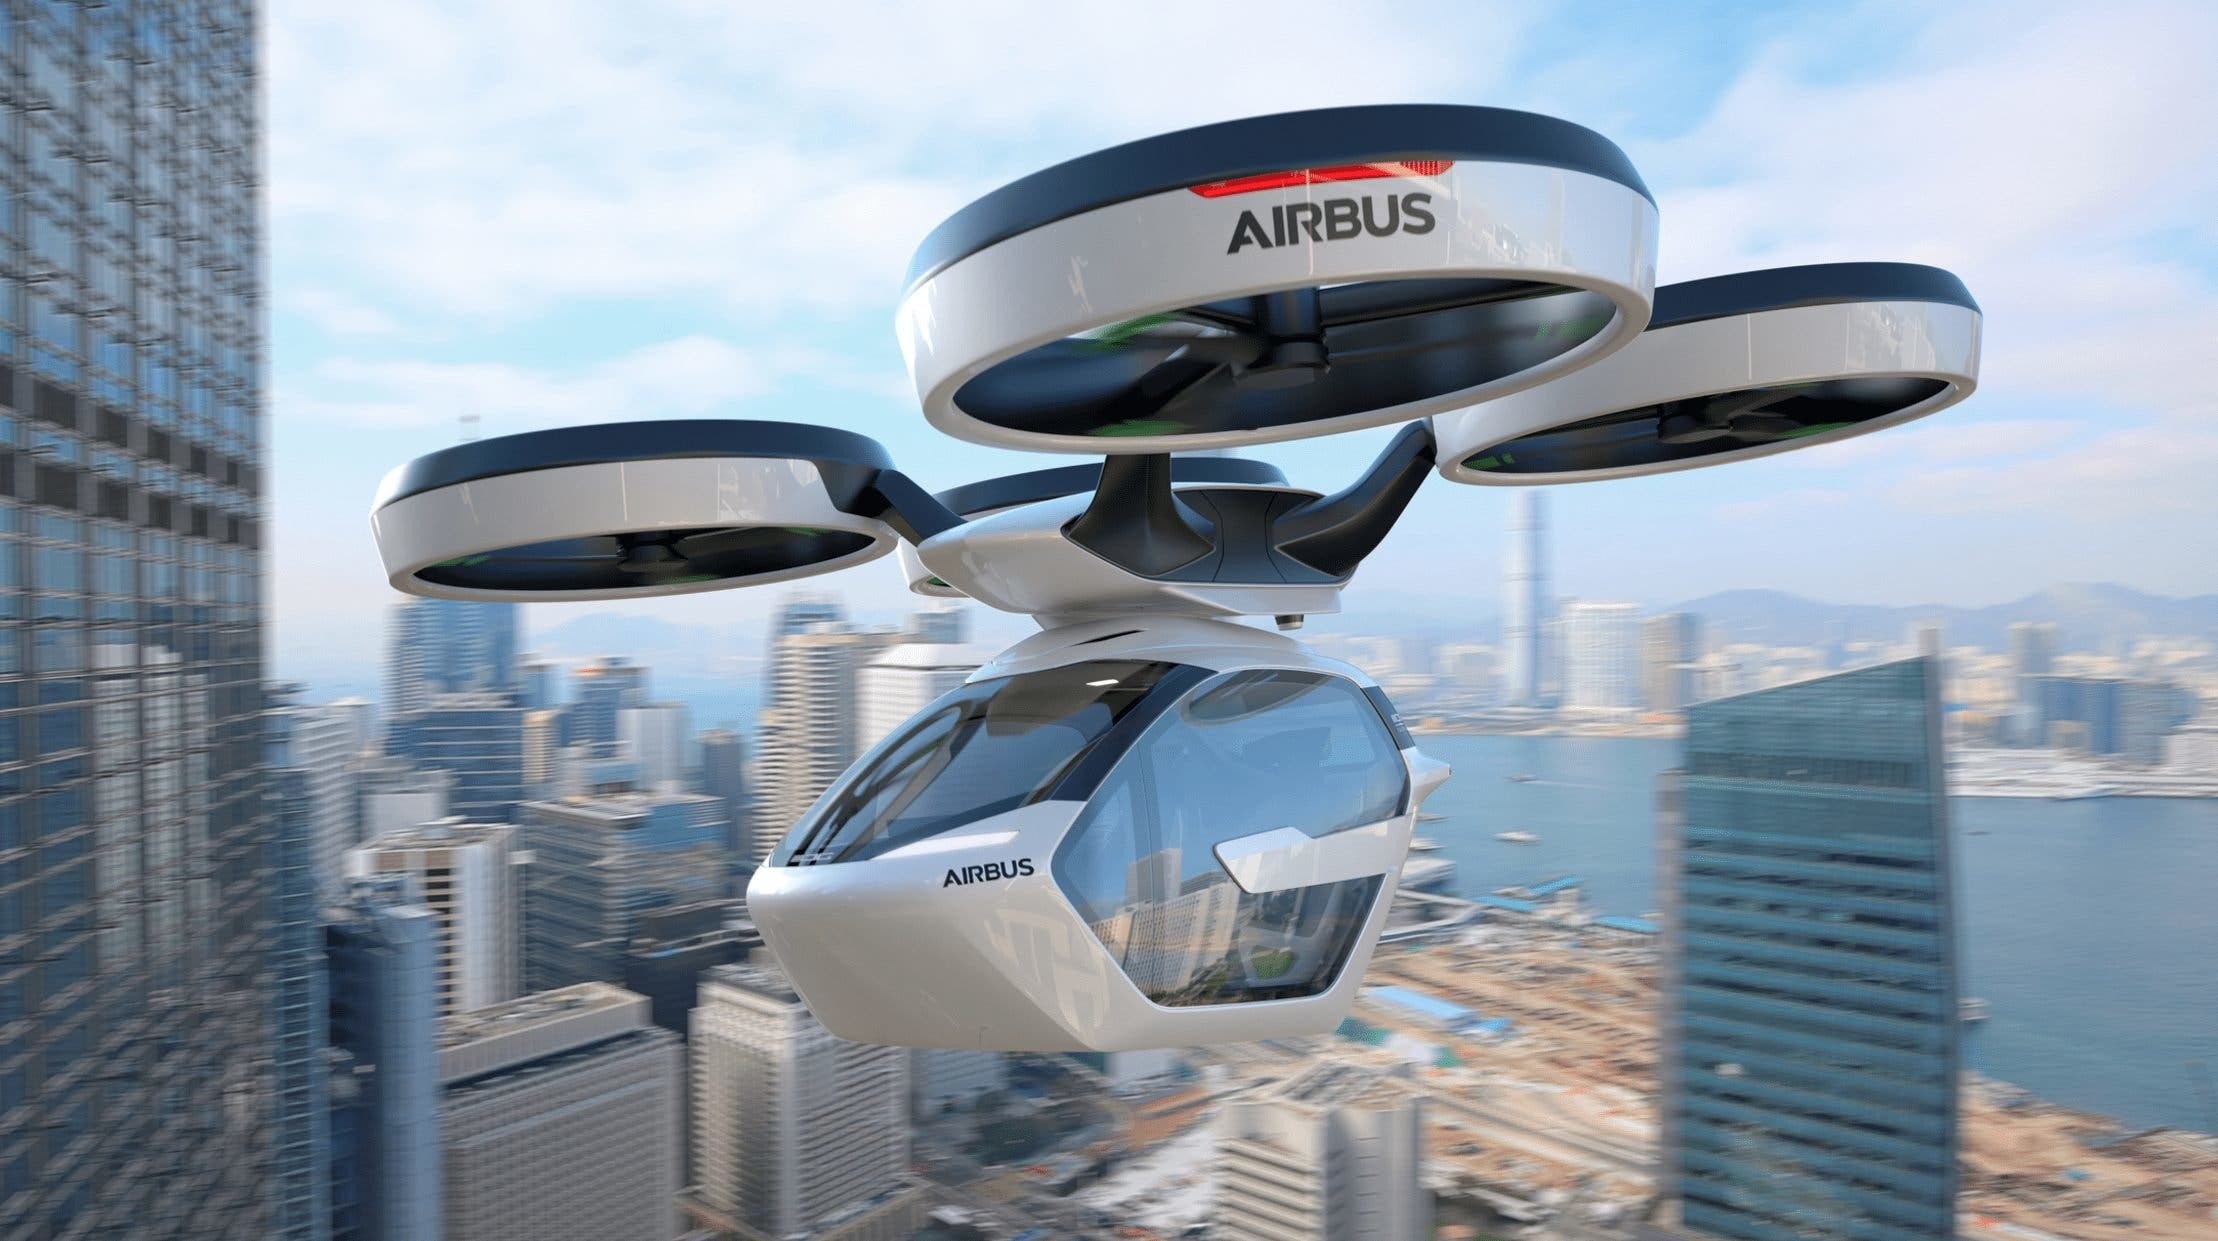 airbus-pupup-coche-volador-Flying-Taxi-2